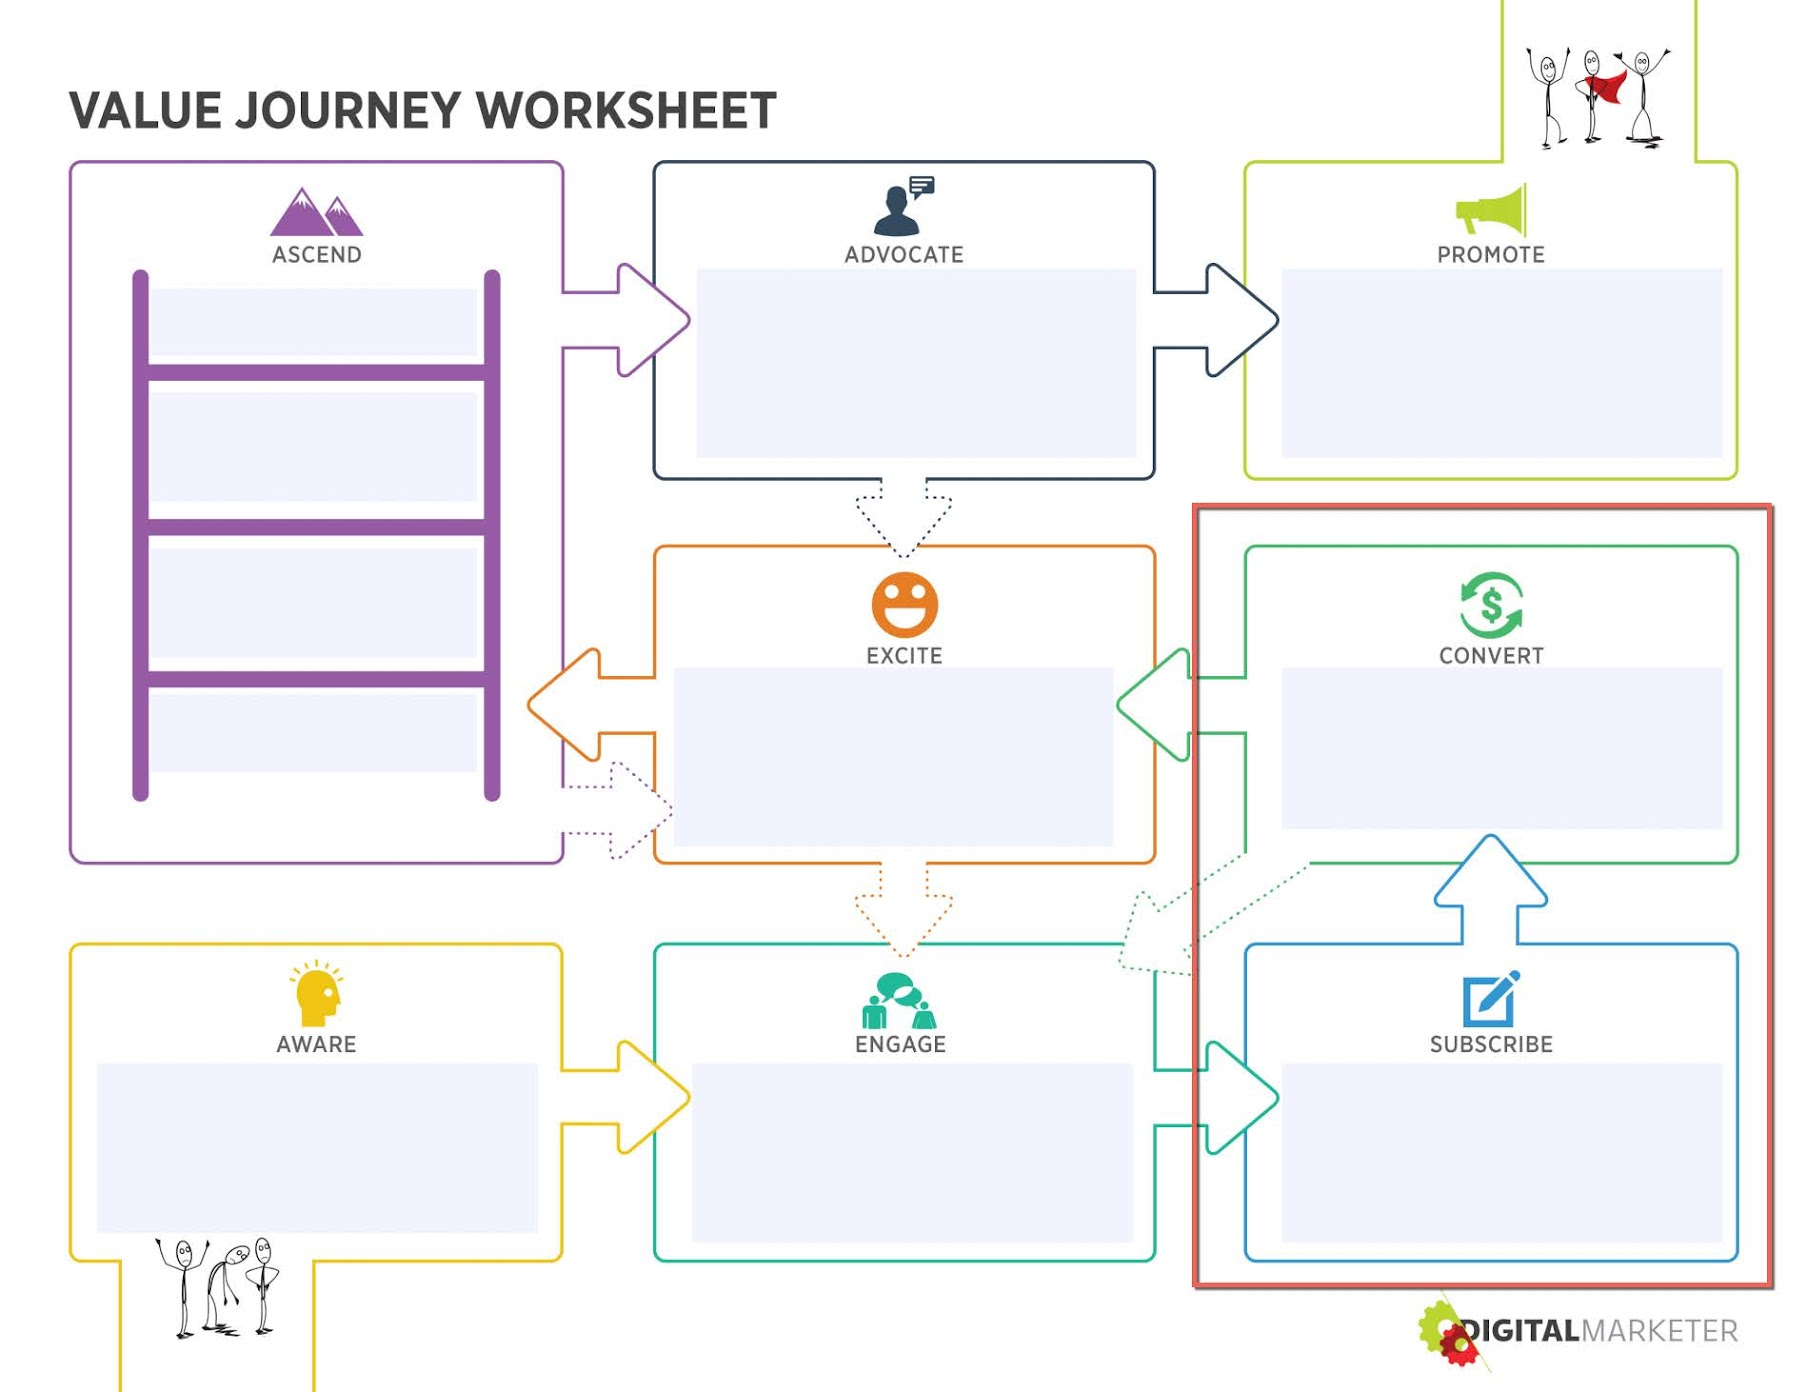 Value Journey Worksheet